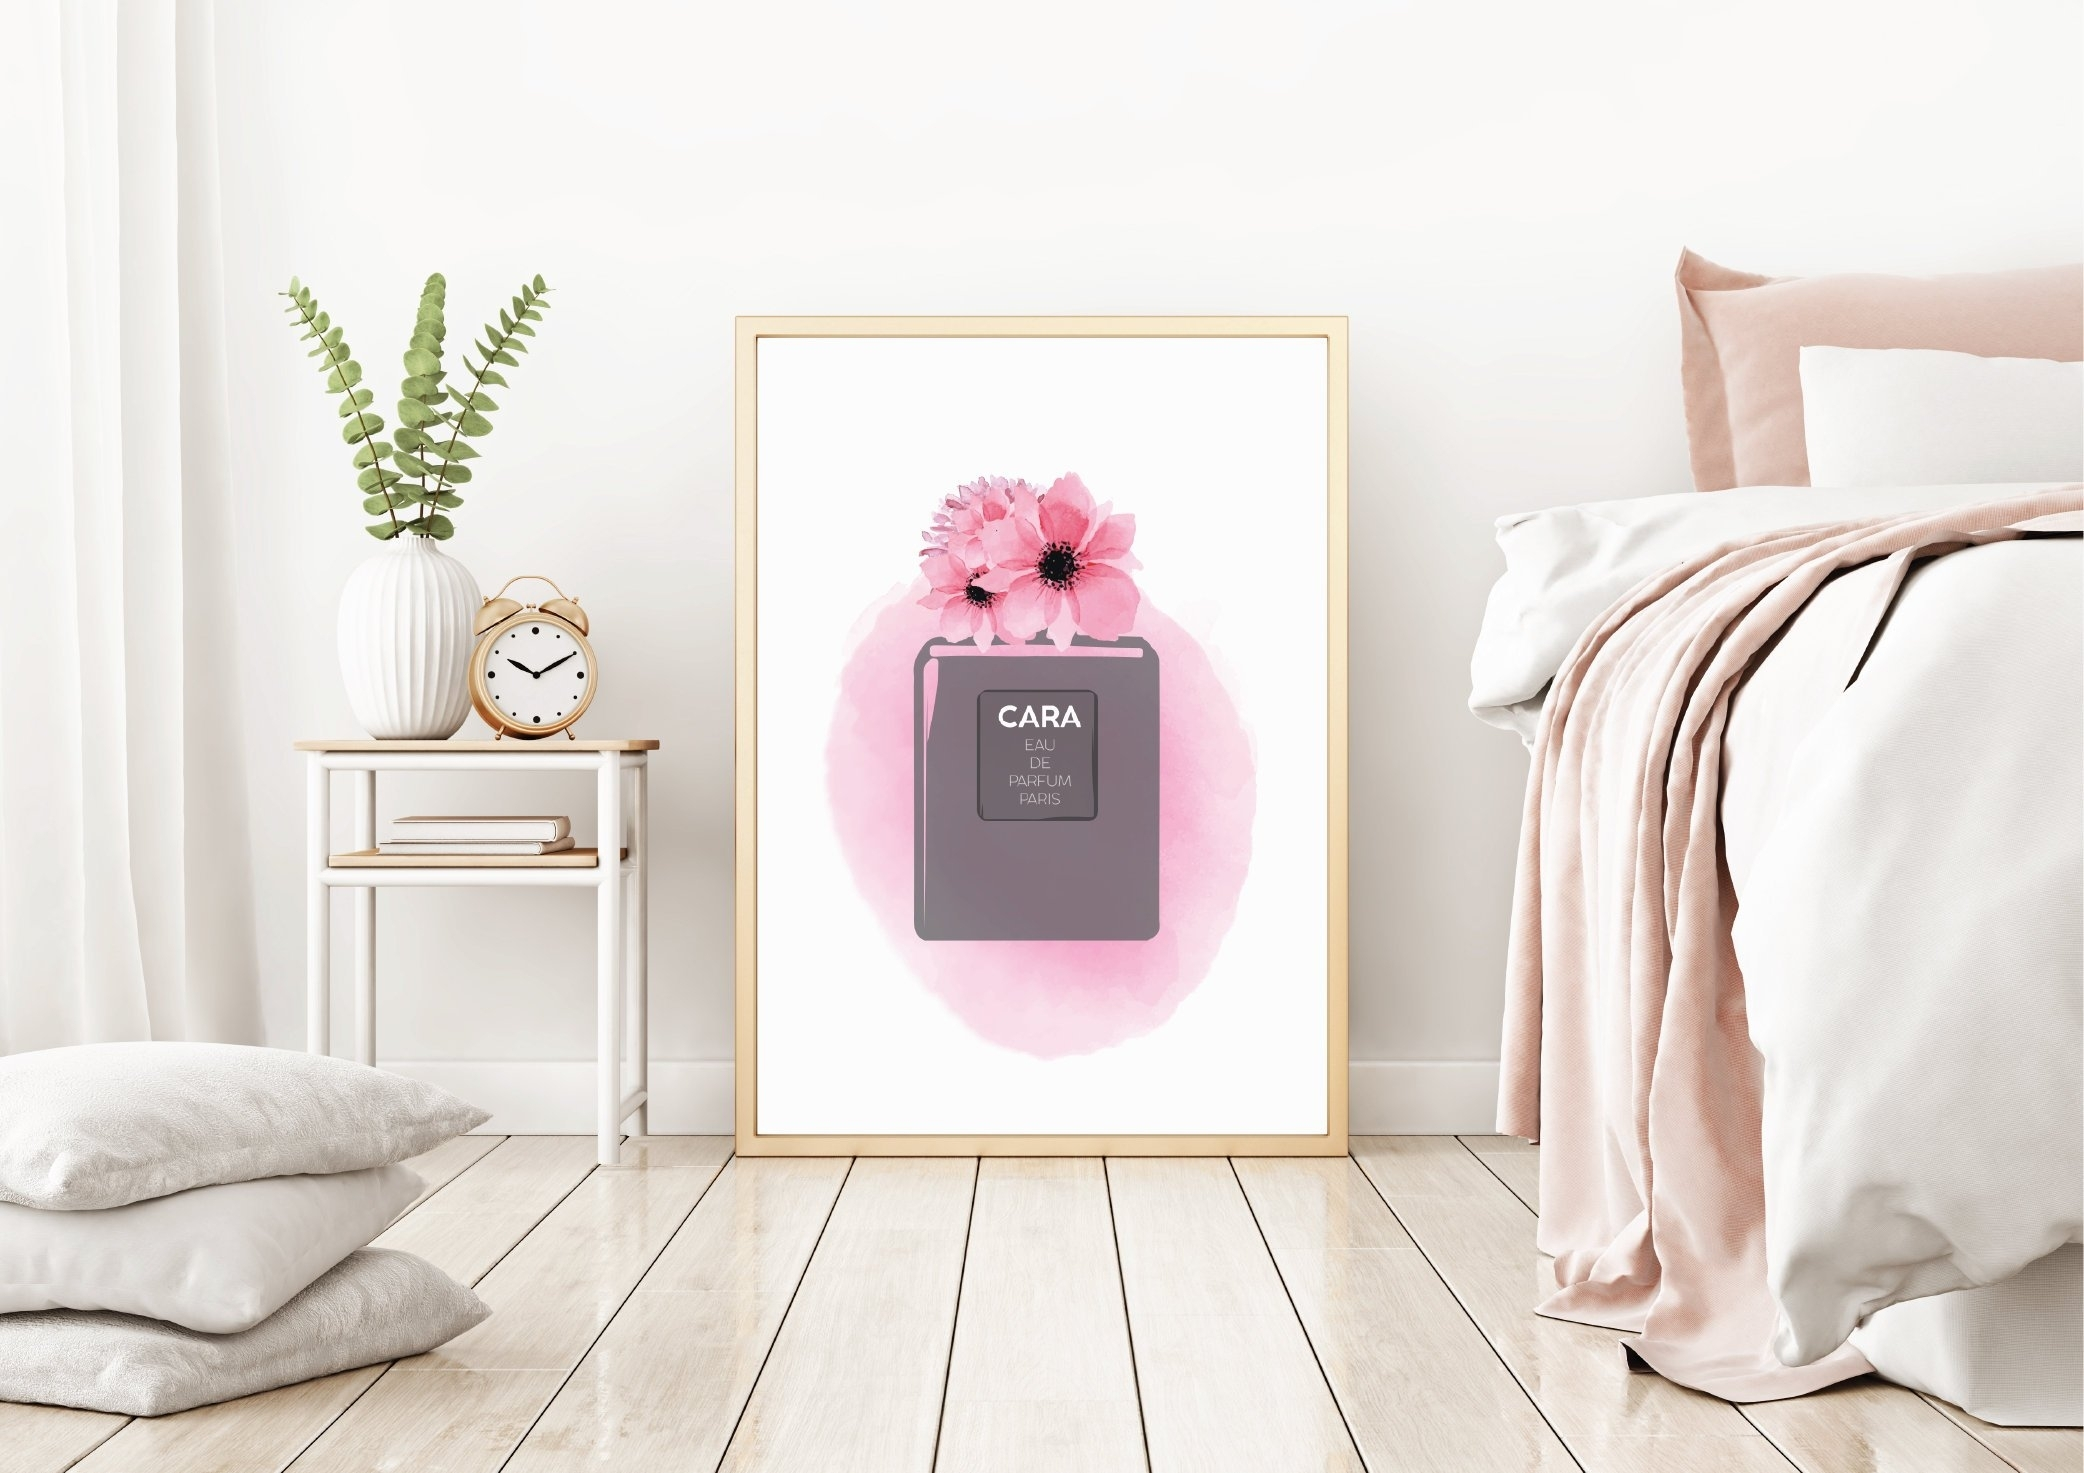 Fashion Wall Art | Personalized Perfume Bottle Print | Custom Wall With Regard To Most Up To Date Fashion Wall Art (Gallery 20 of 20)